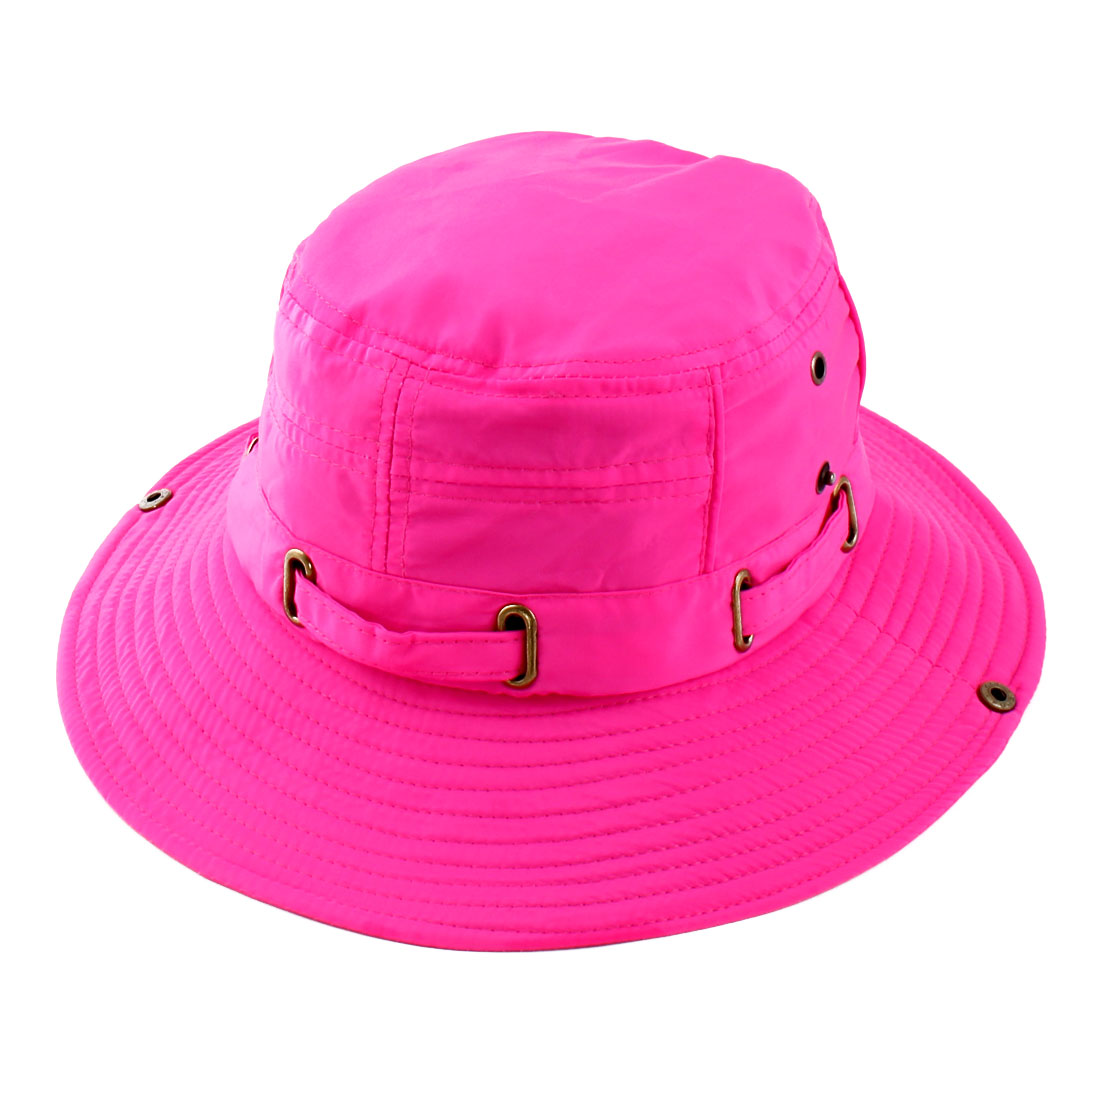 Fisherman Cotton Blends Outdoor Sports Mountaineering Hunting Adjustable Strap Wide Brim Bucket Summer Cap Fishing Hat Fuchsia